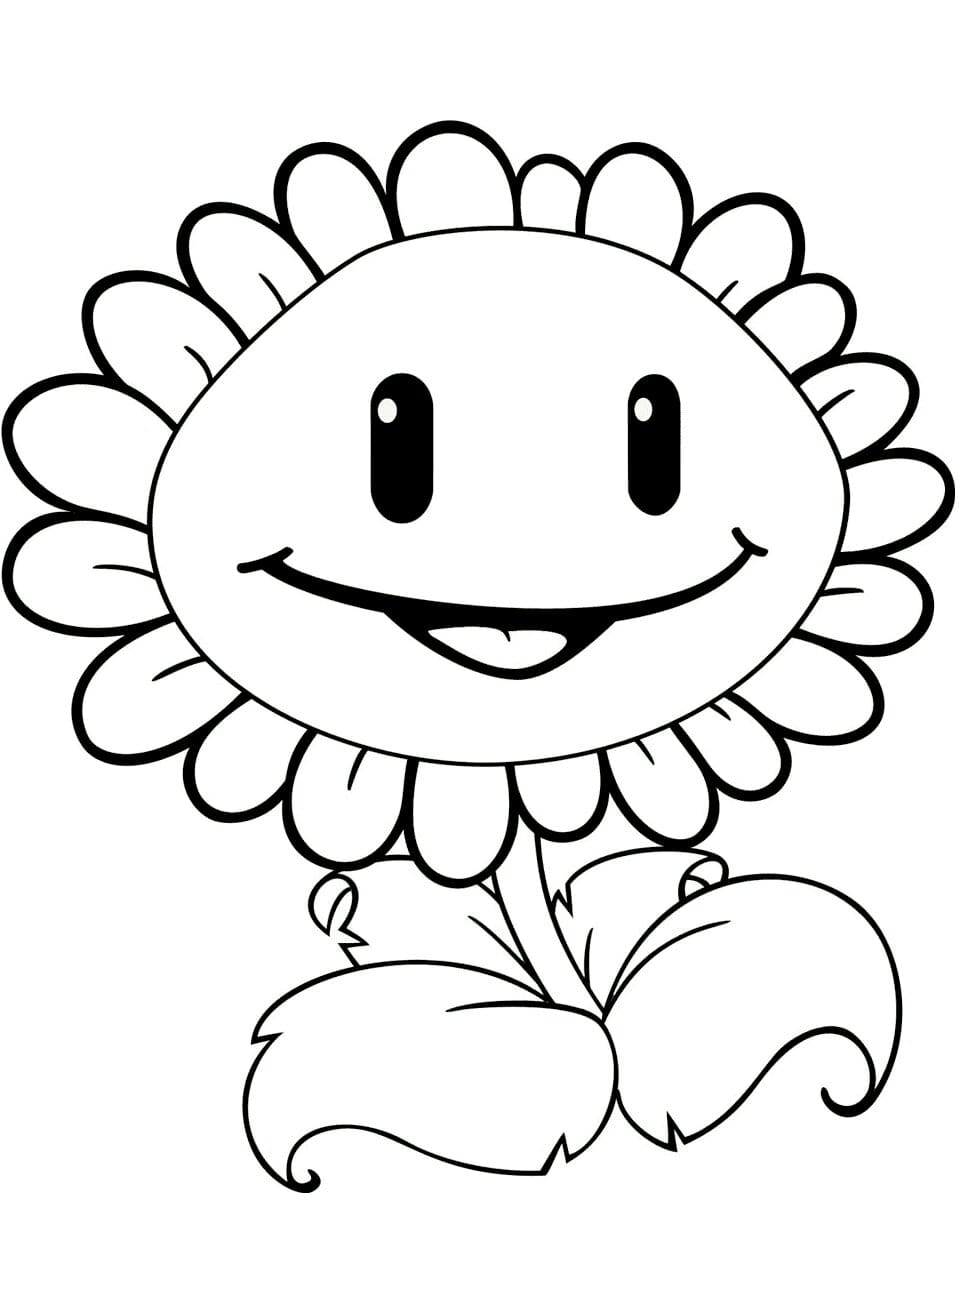 A Little Sunflower Coloring Page